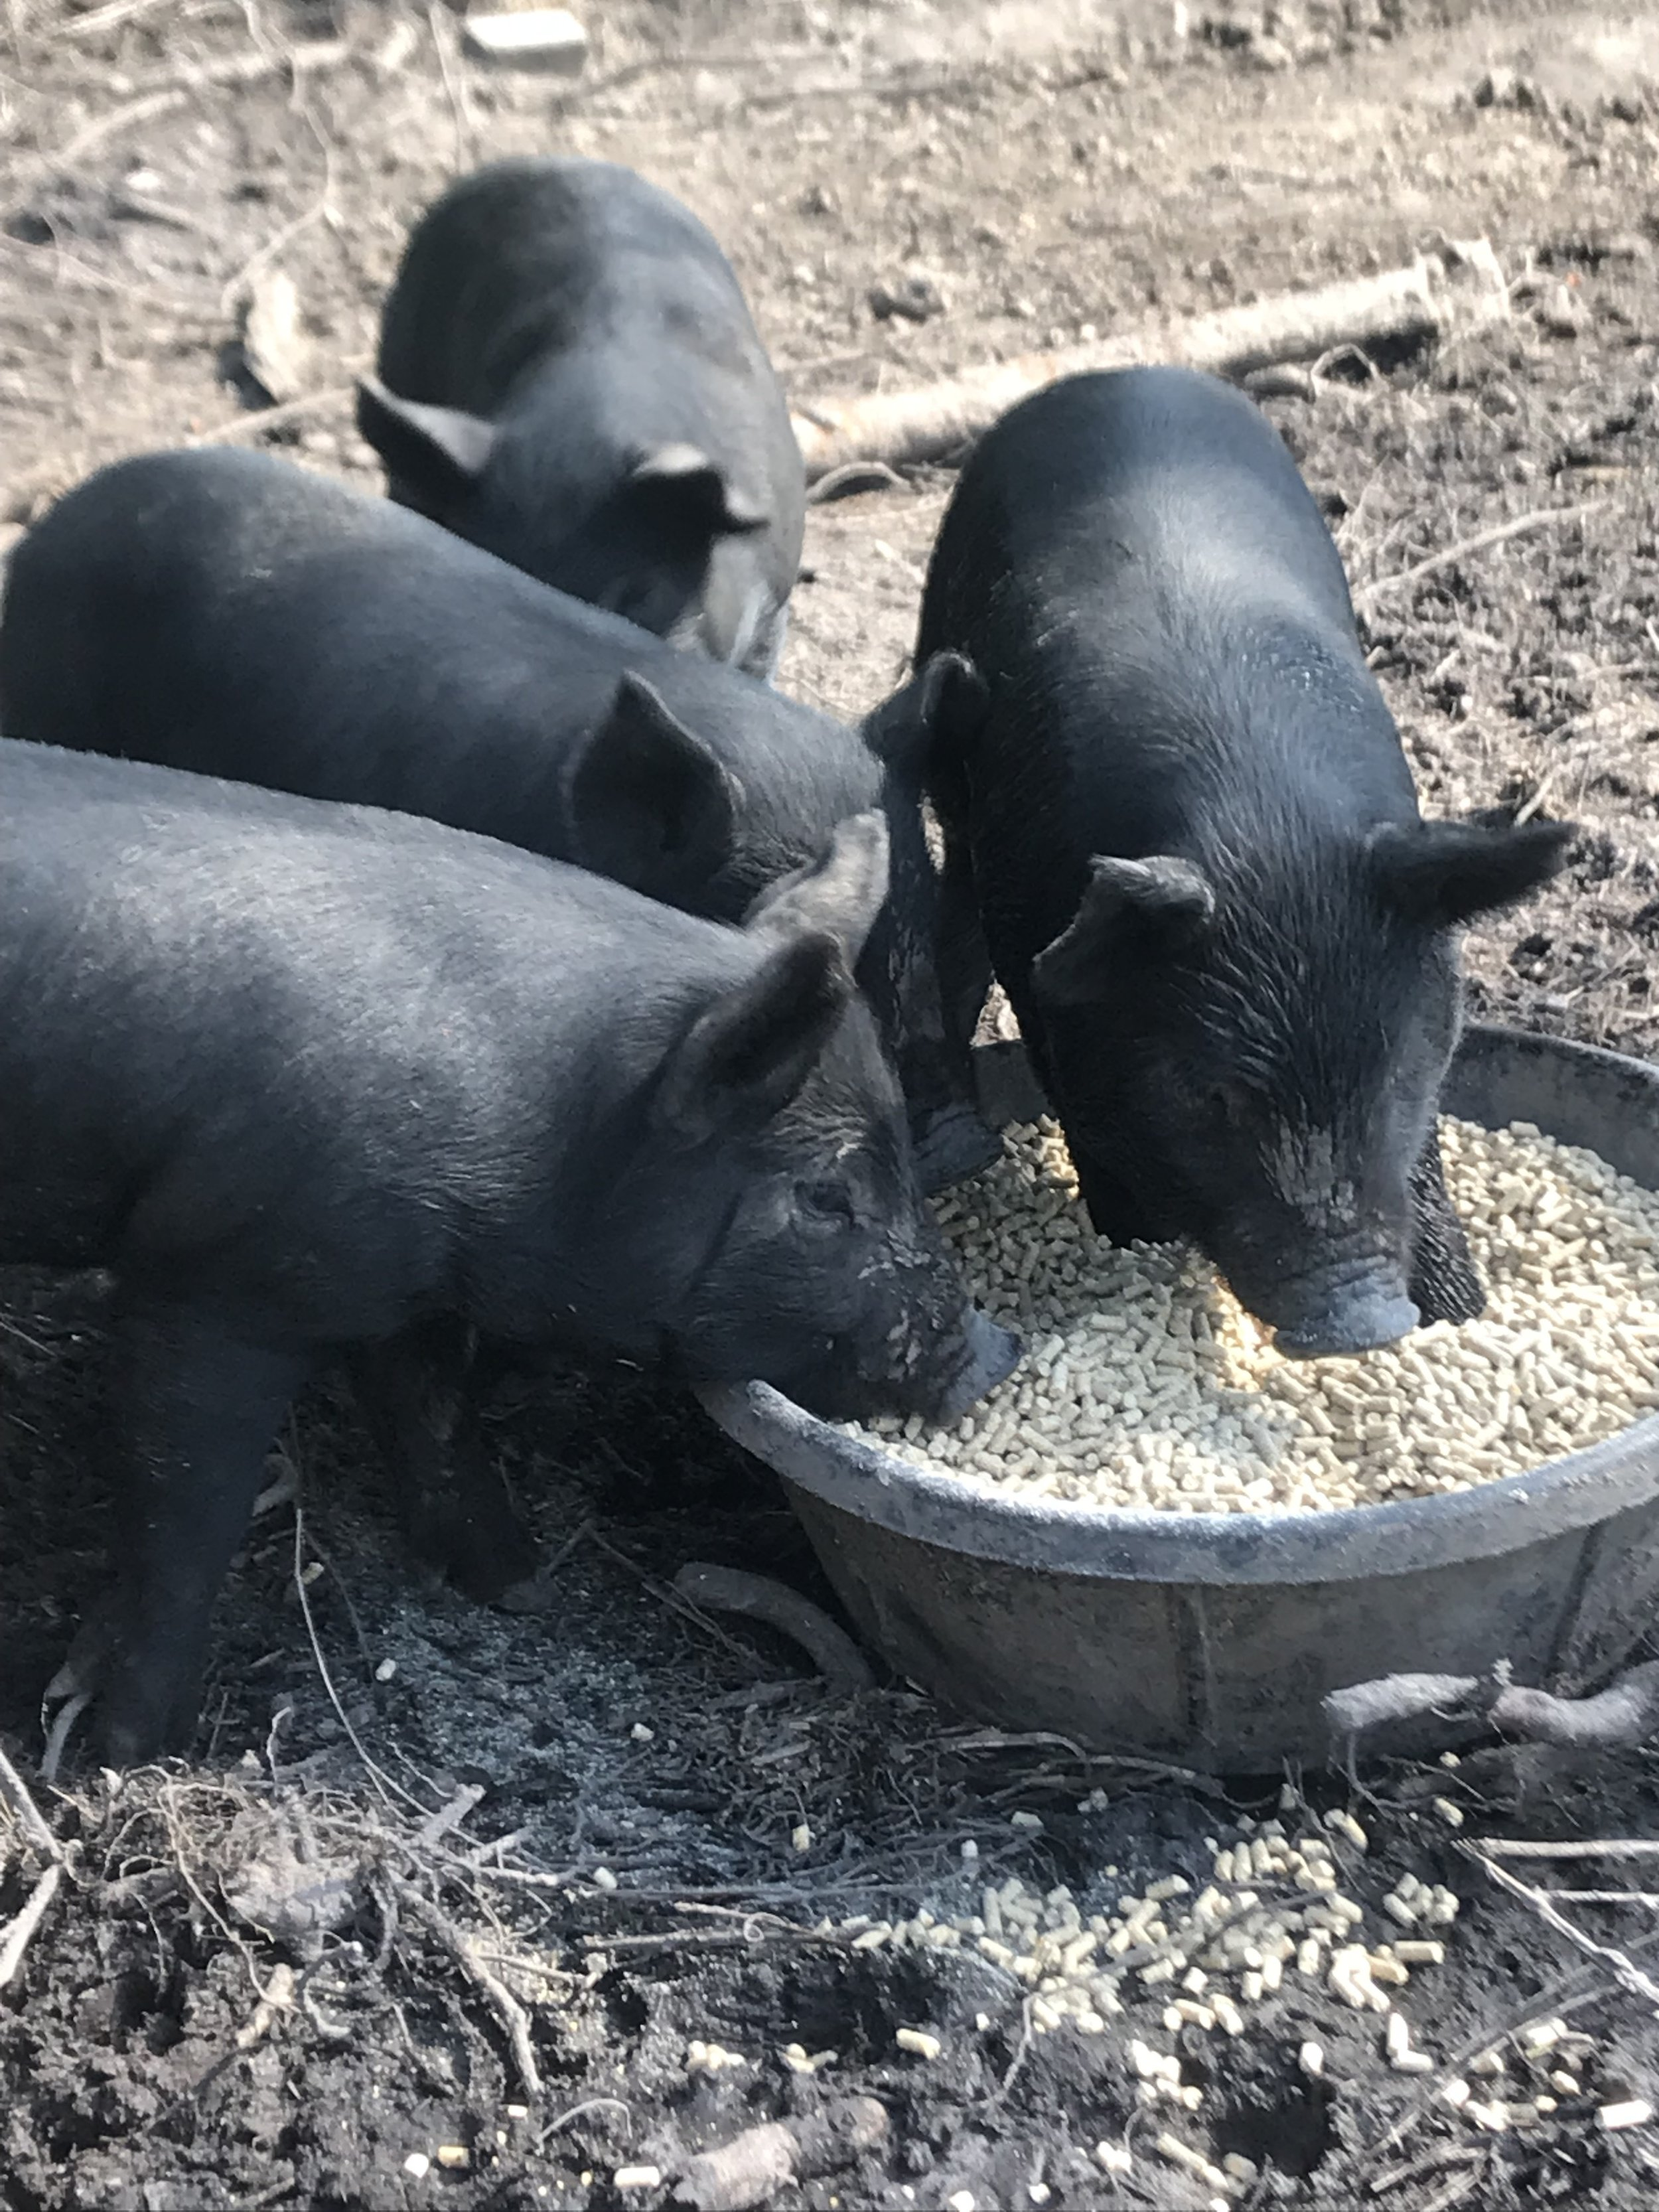 Fresh Pork and Healthy Pigs